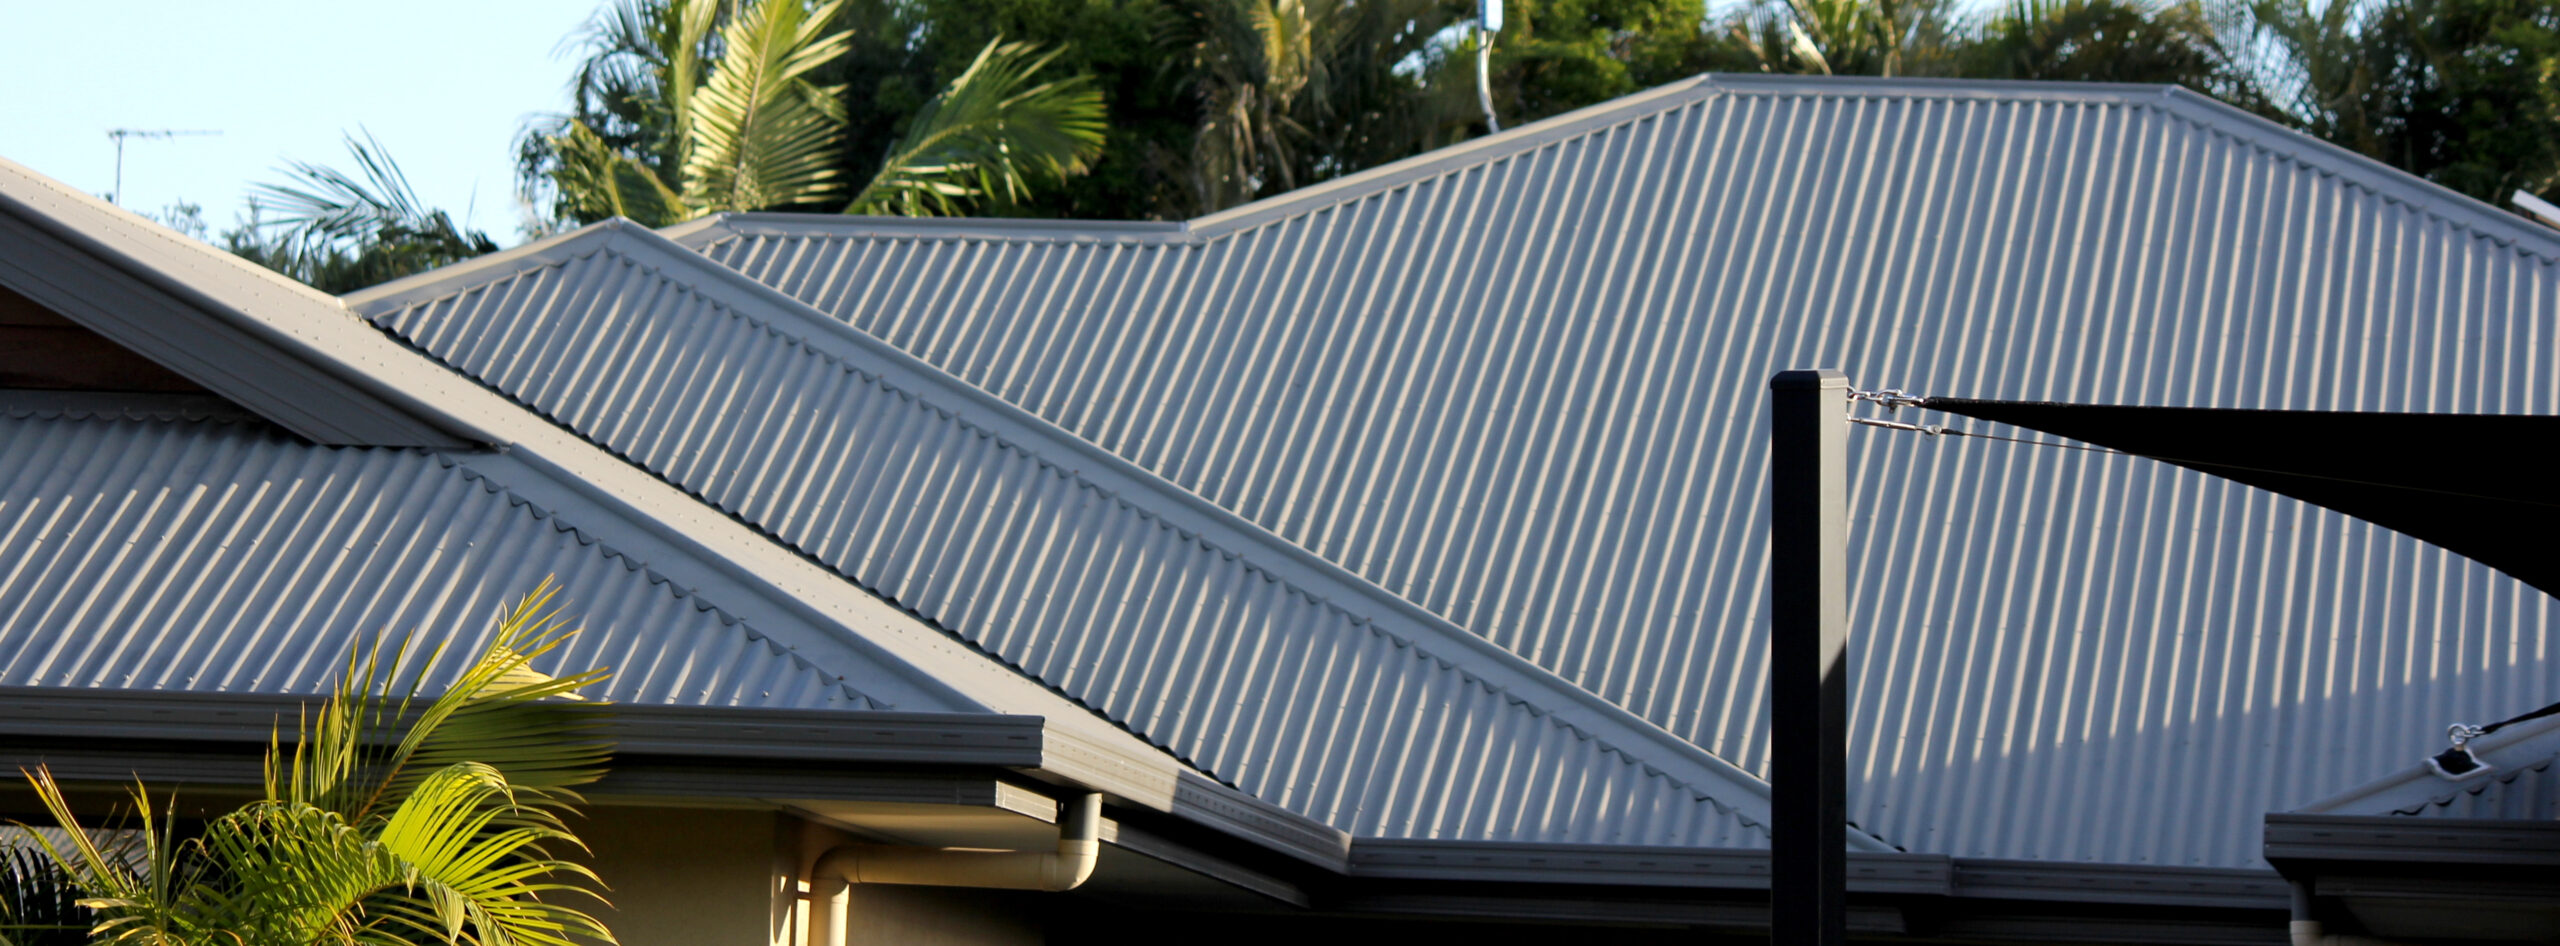 tile vs metal roofing which one is